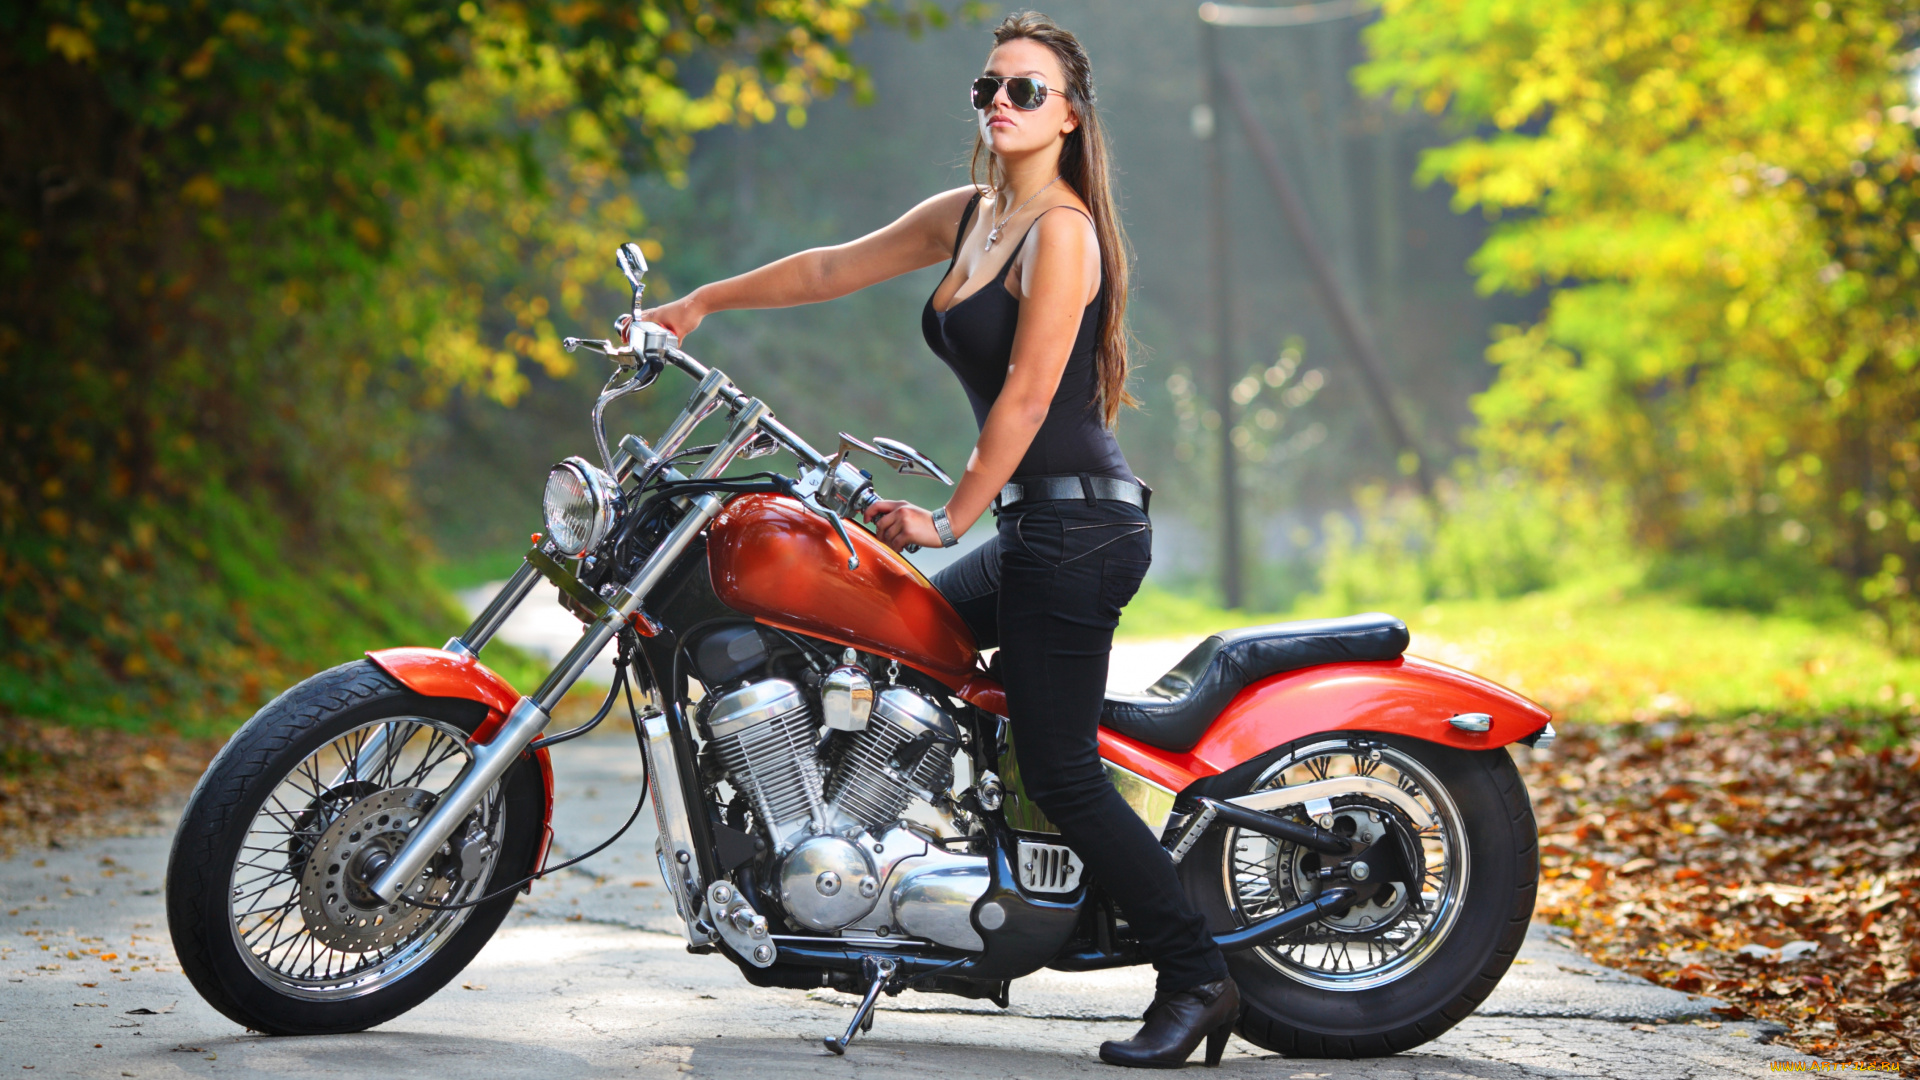 Motorcycle and girl pics, lingerie hot sex